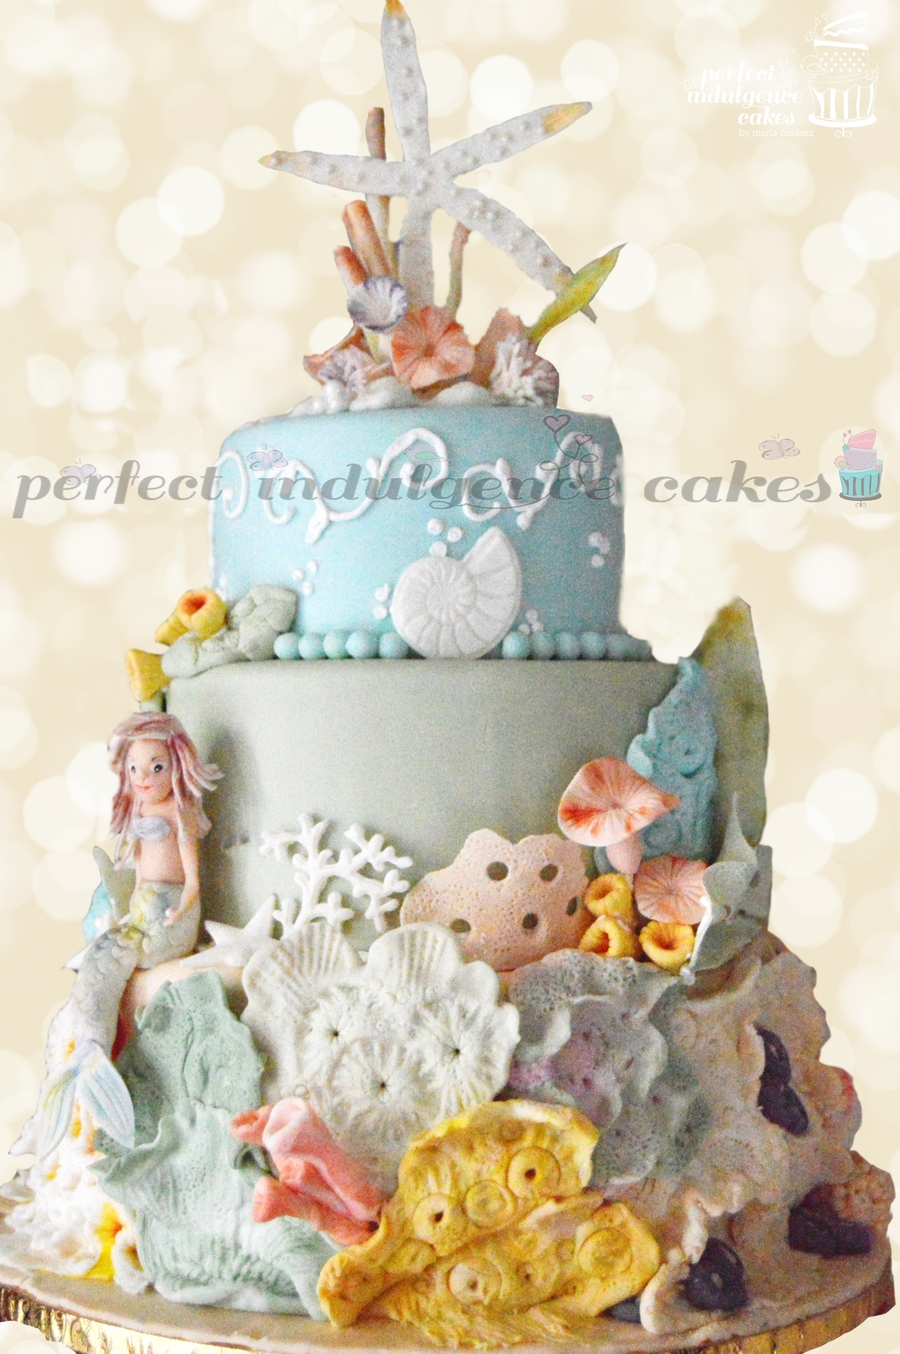 Under The Sea Birthday Cake Inspired By The Magic Of The Sea Created